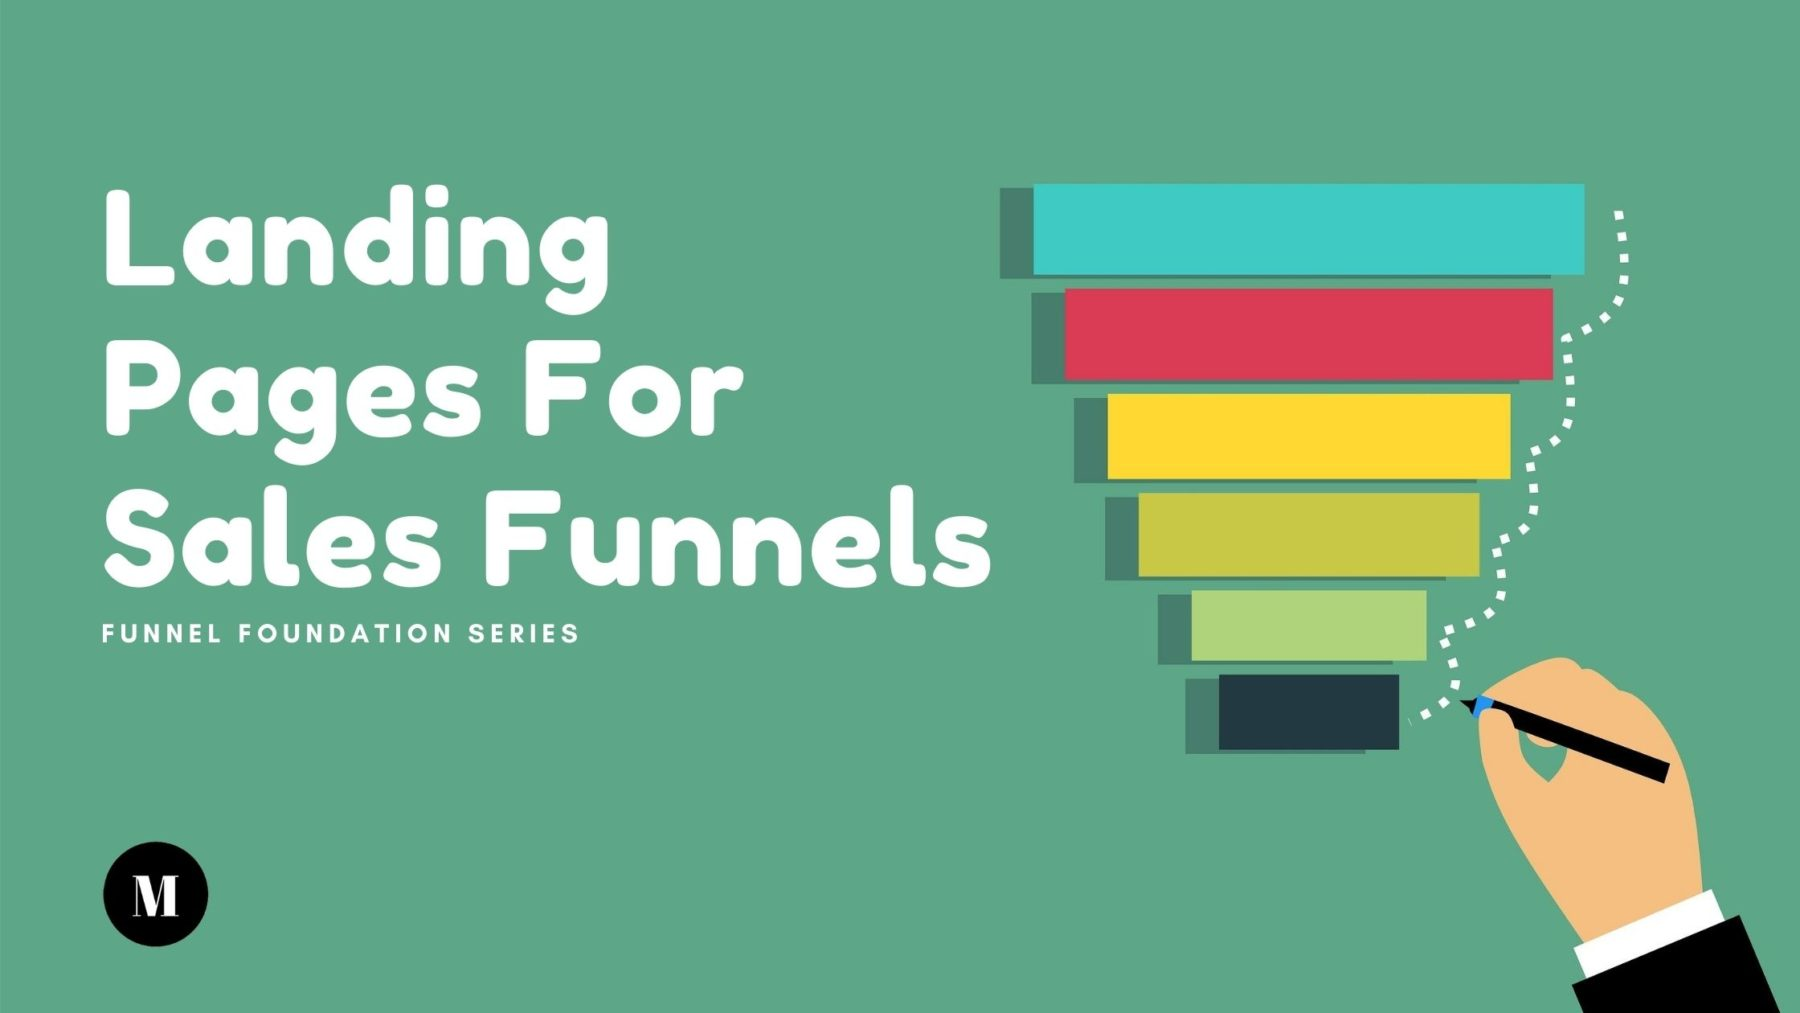 Landing Pages for Sales Funnels